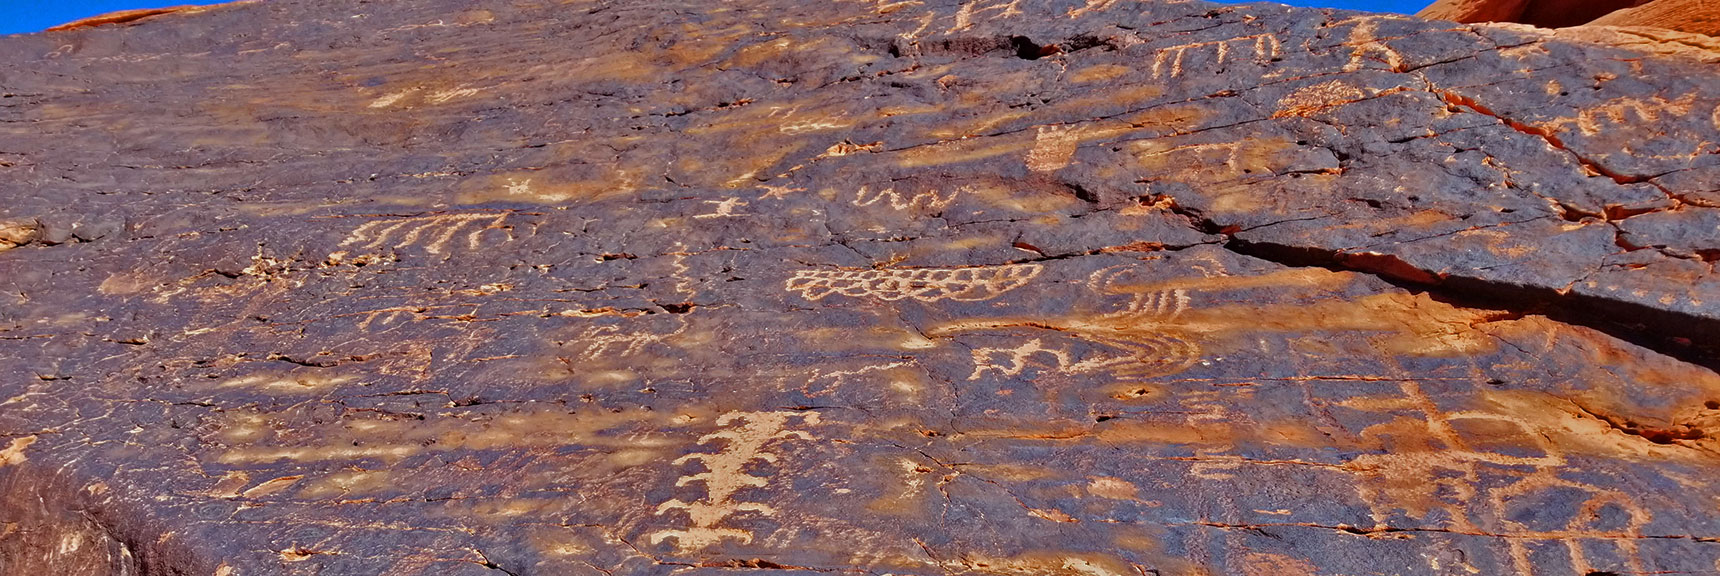 Petroglyphs on Mouse's Tank Trail in Valley of Fire State Park, Nevada, Slide 11